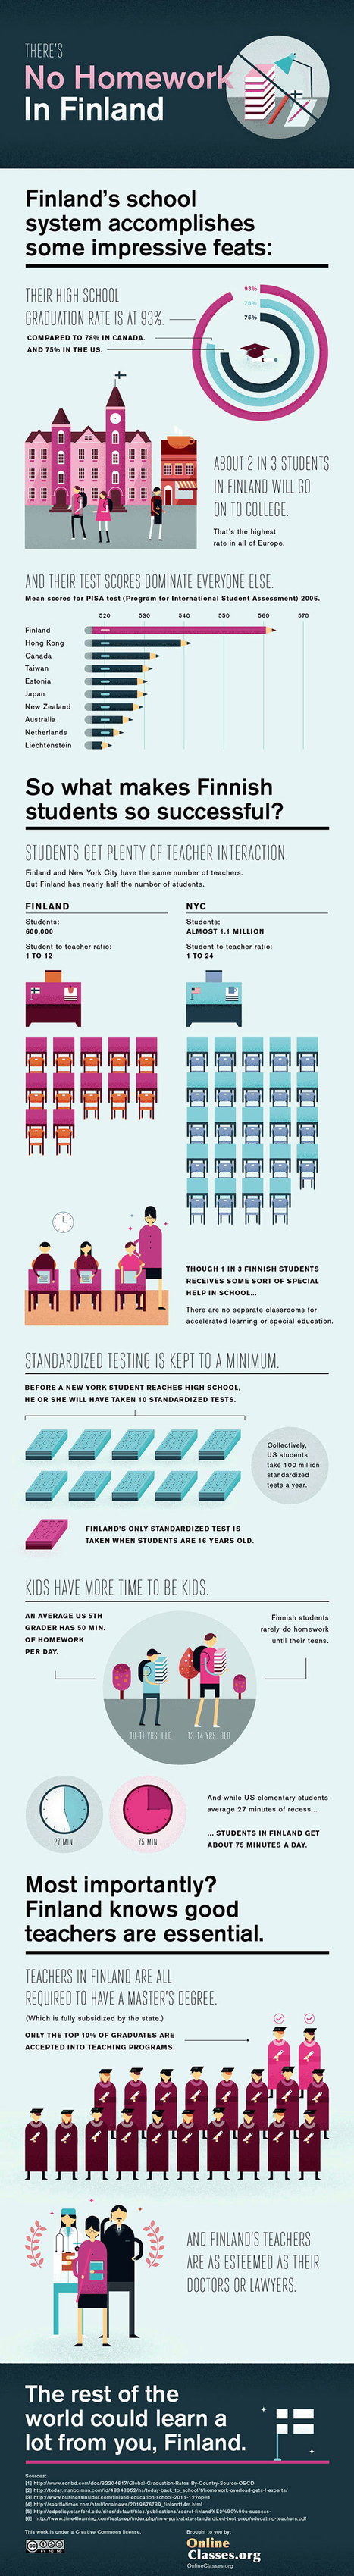 Finland's School System - Infographic | School Psychology Tech | Scoop.it